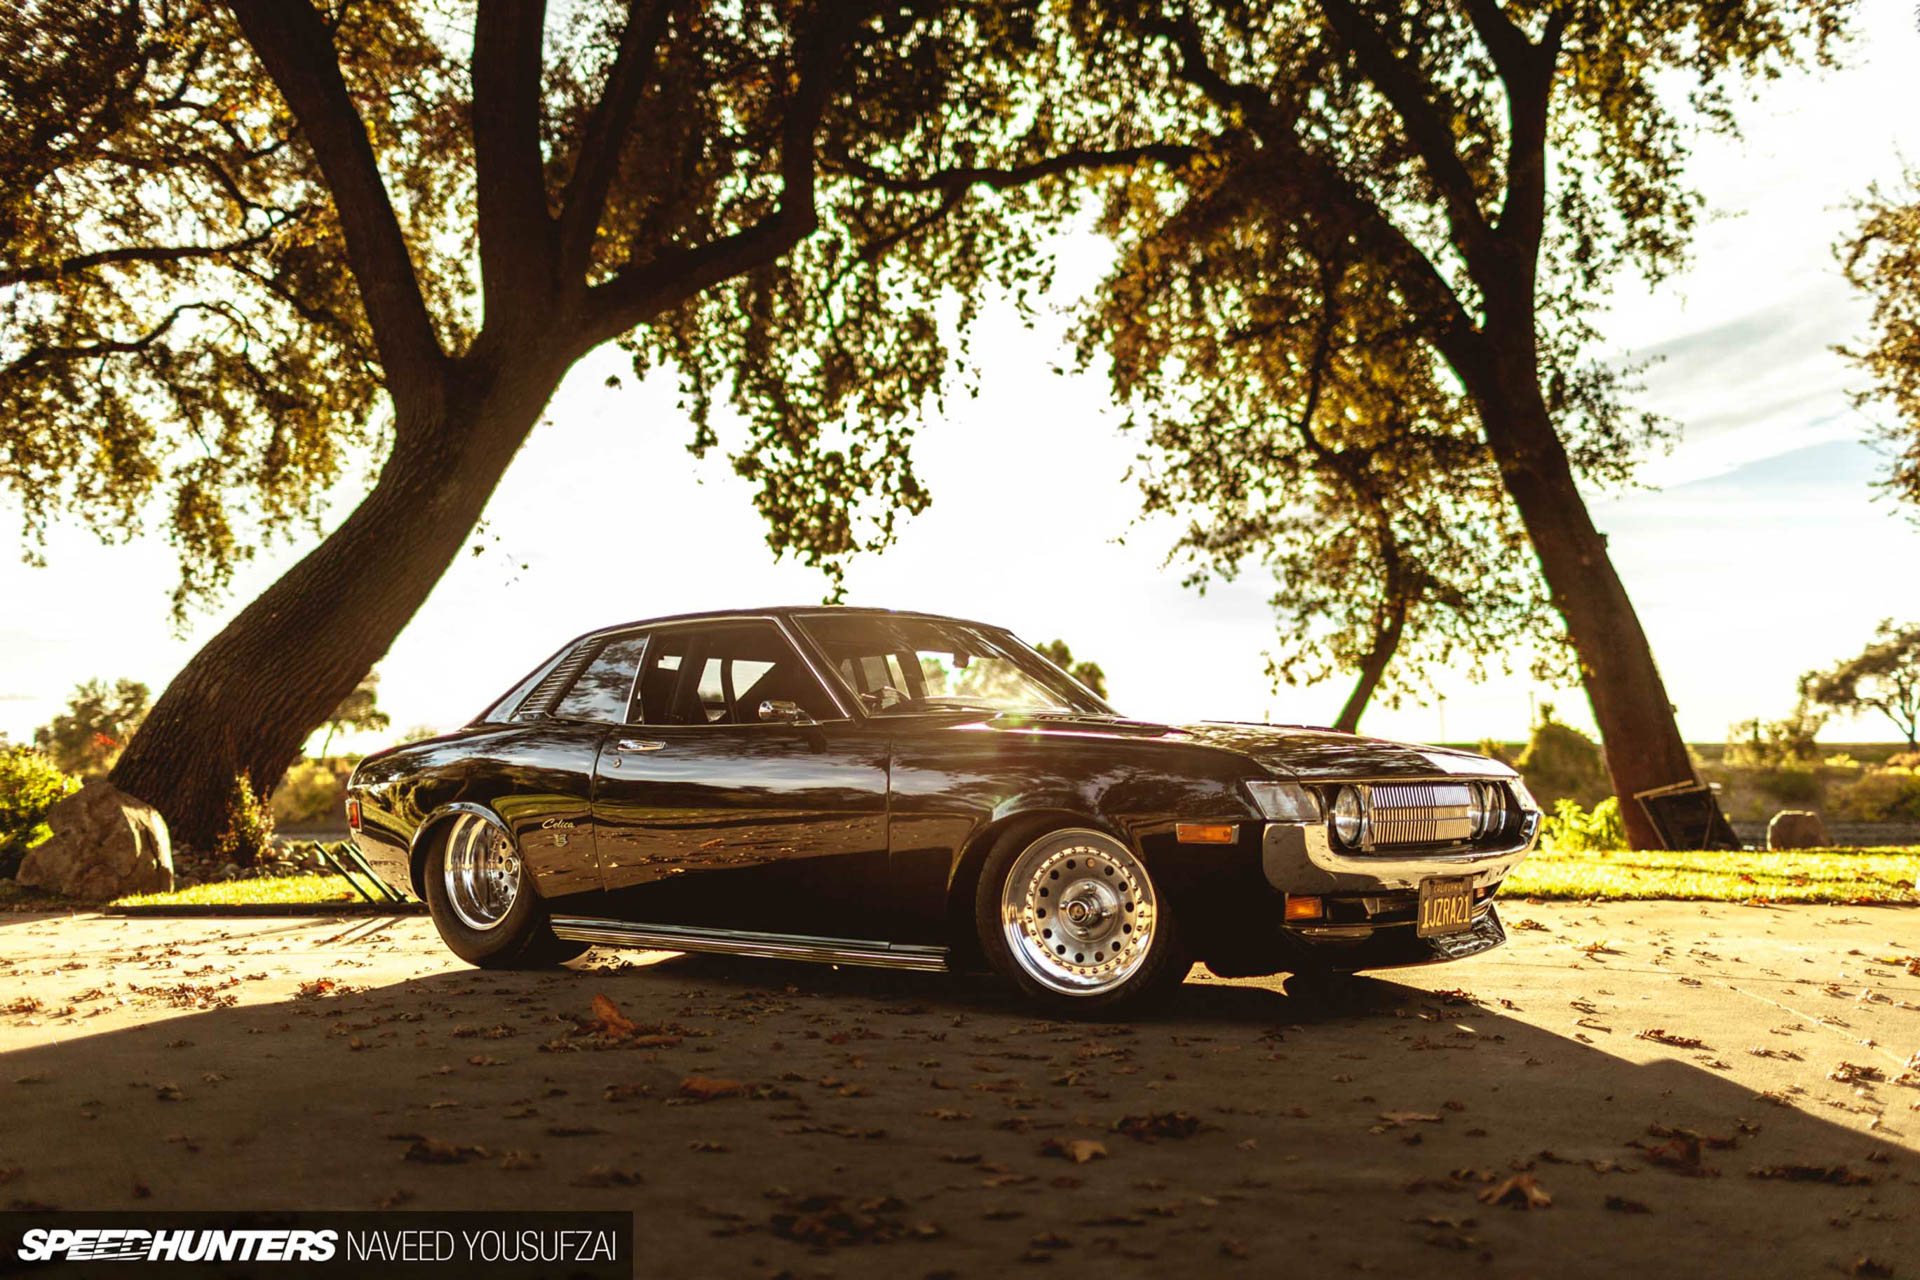 [Image: MG_85922018-Cary-Celica-for-Speedhunters...sufzai.jpg]